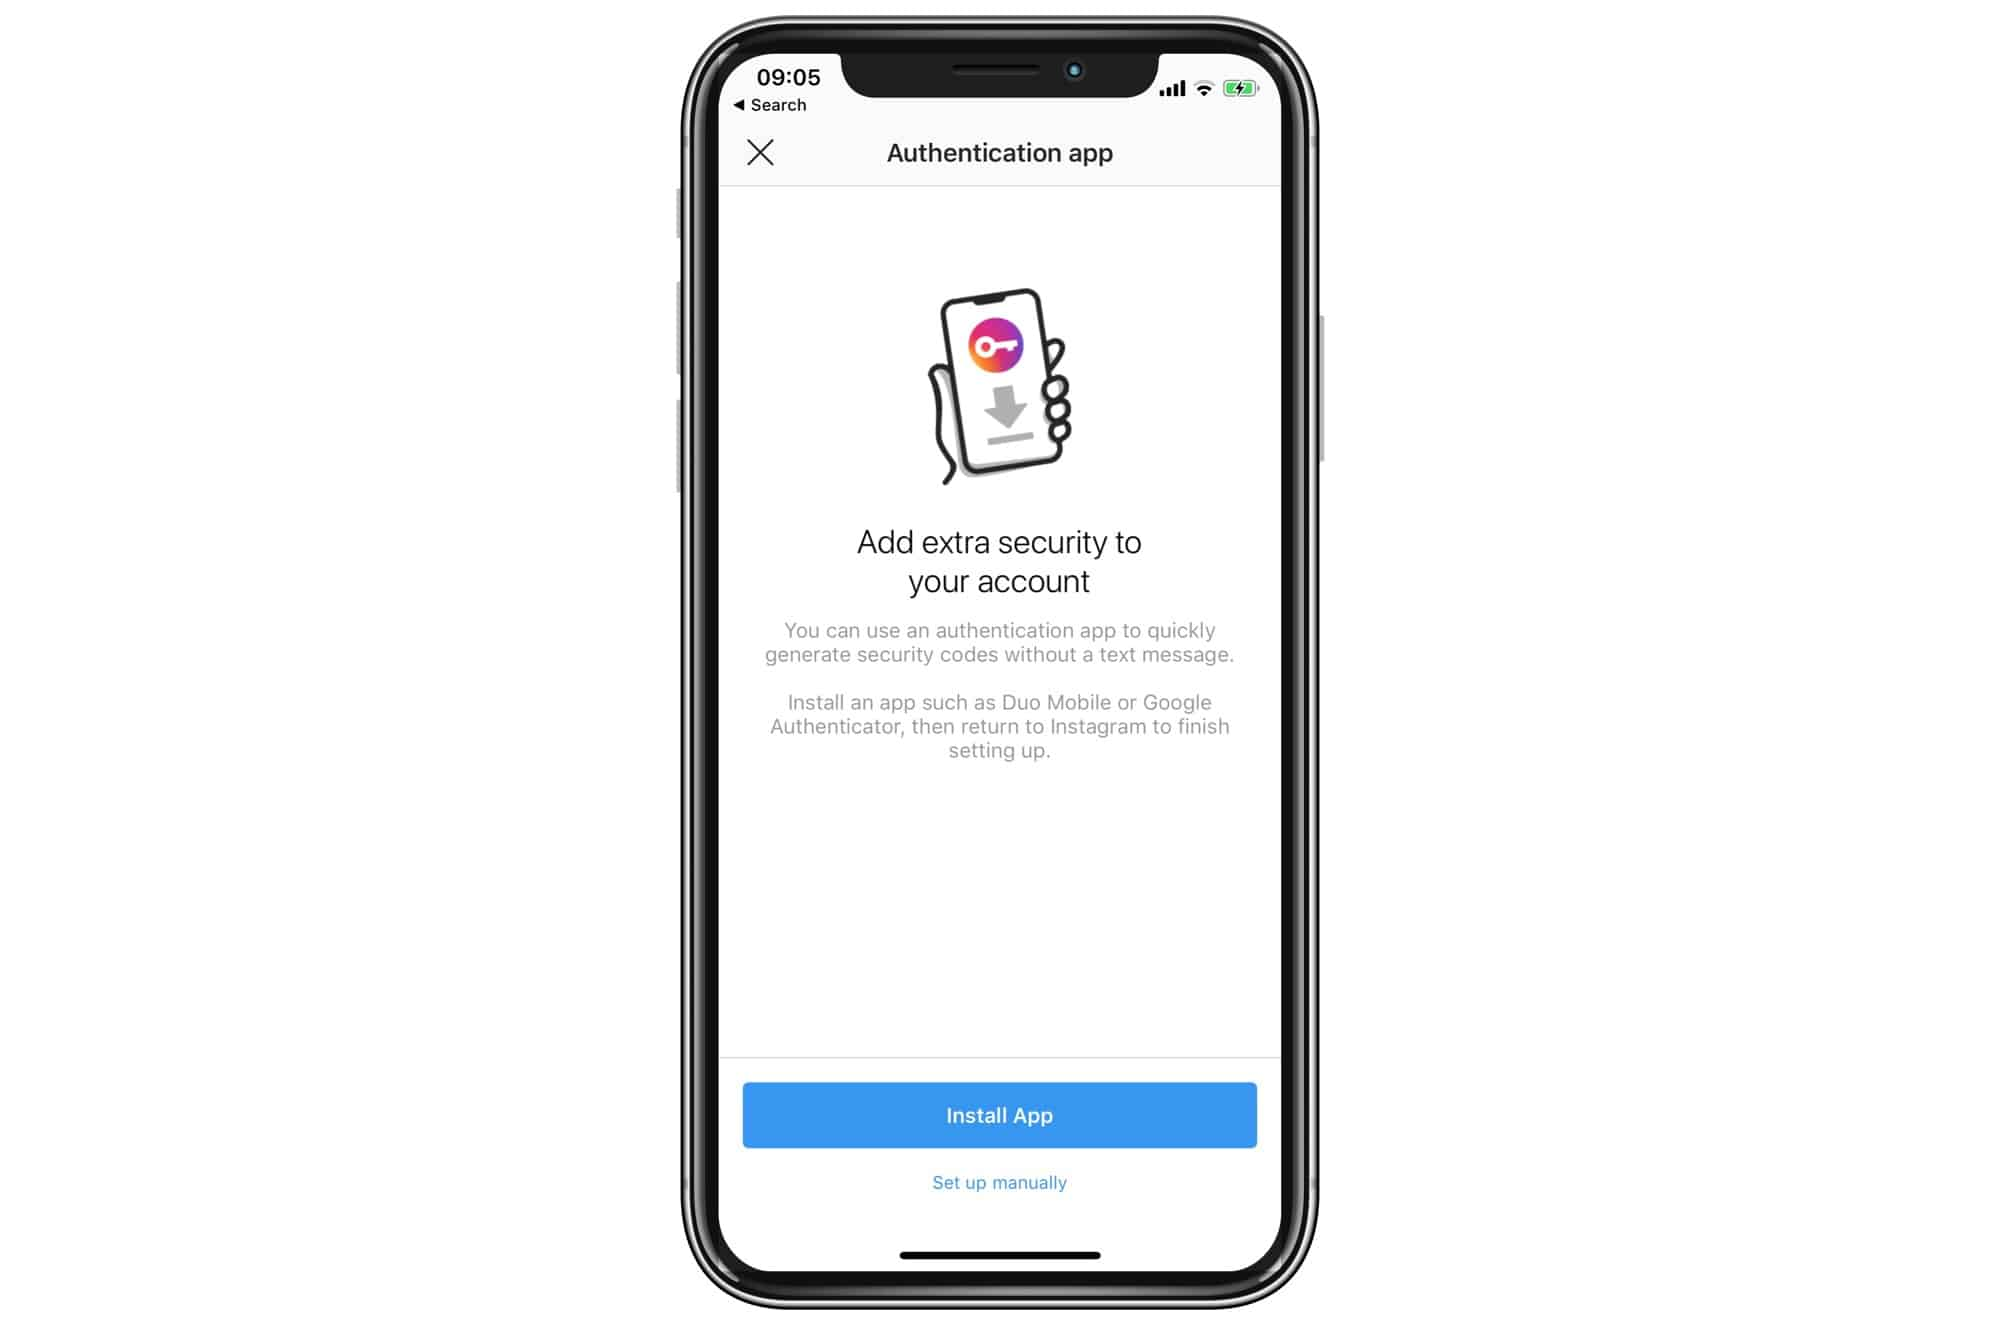 Tap Set up Manually if you already have an authentication app installed.